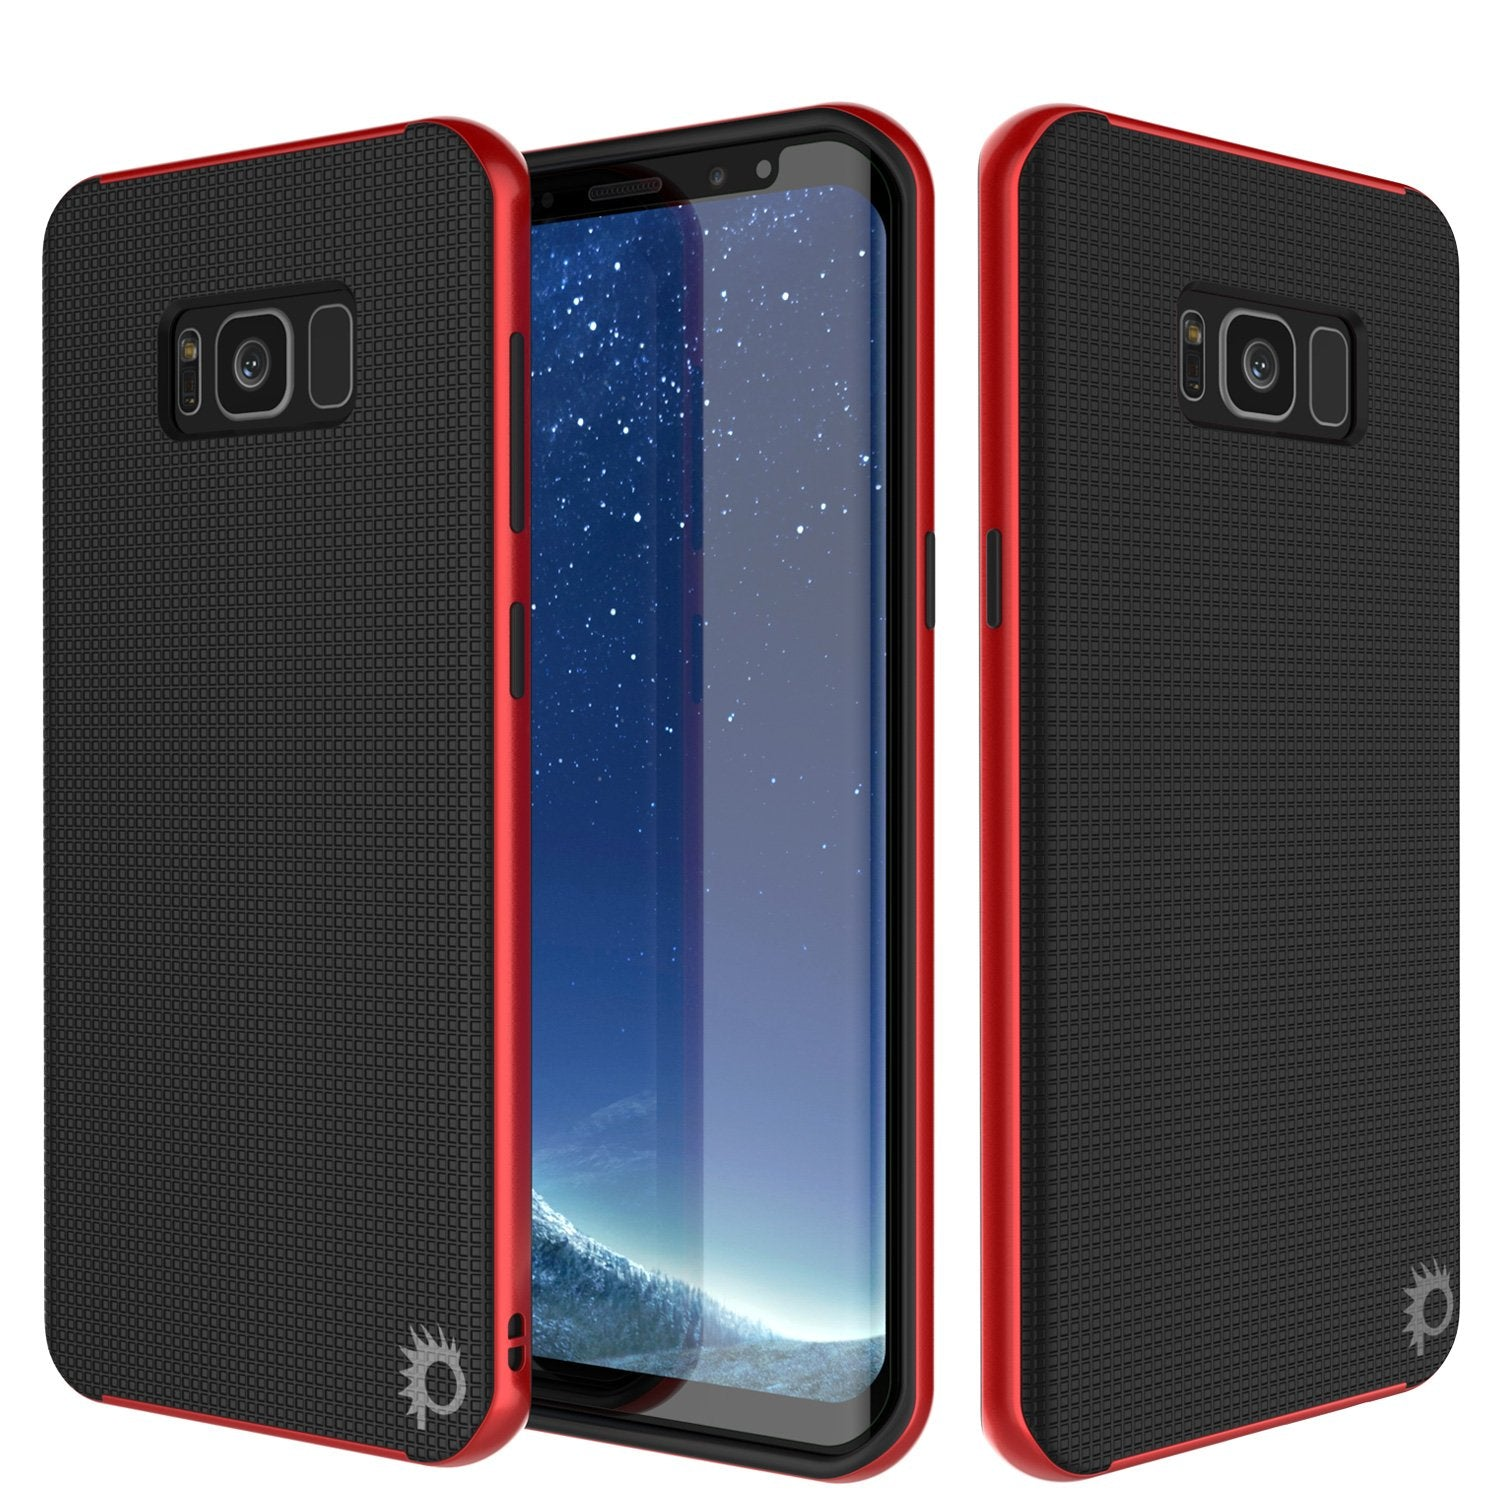 Galaxy S8 Case, PunkCase [Stealth Series] Hybrid 3-Piece Shockproof Dual Layer Cover [Non-Slip] [Soft TPU + PC Bumper] with PUNKSHIELD Screen Protector for Samsung S8 Edge [Red]